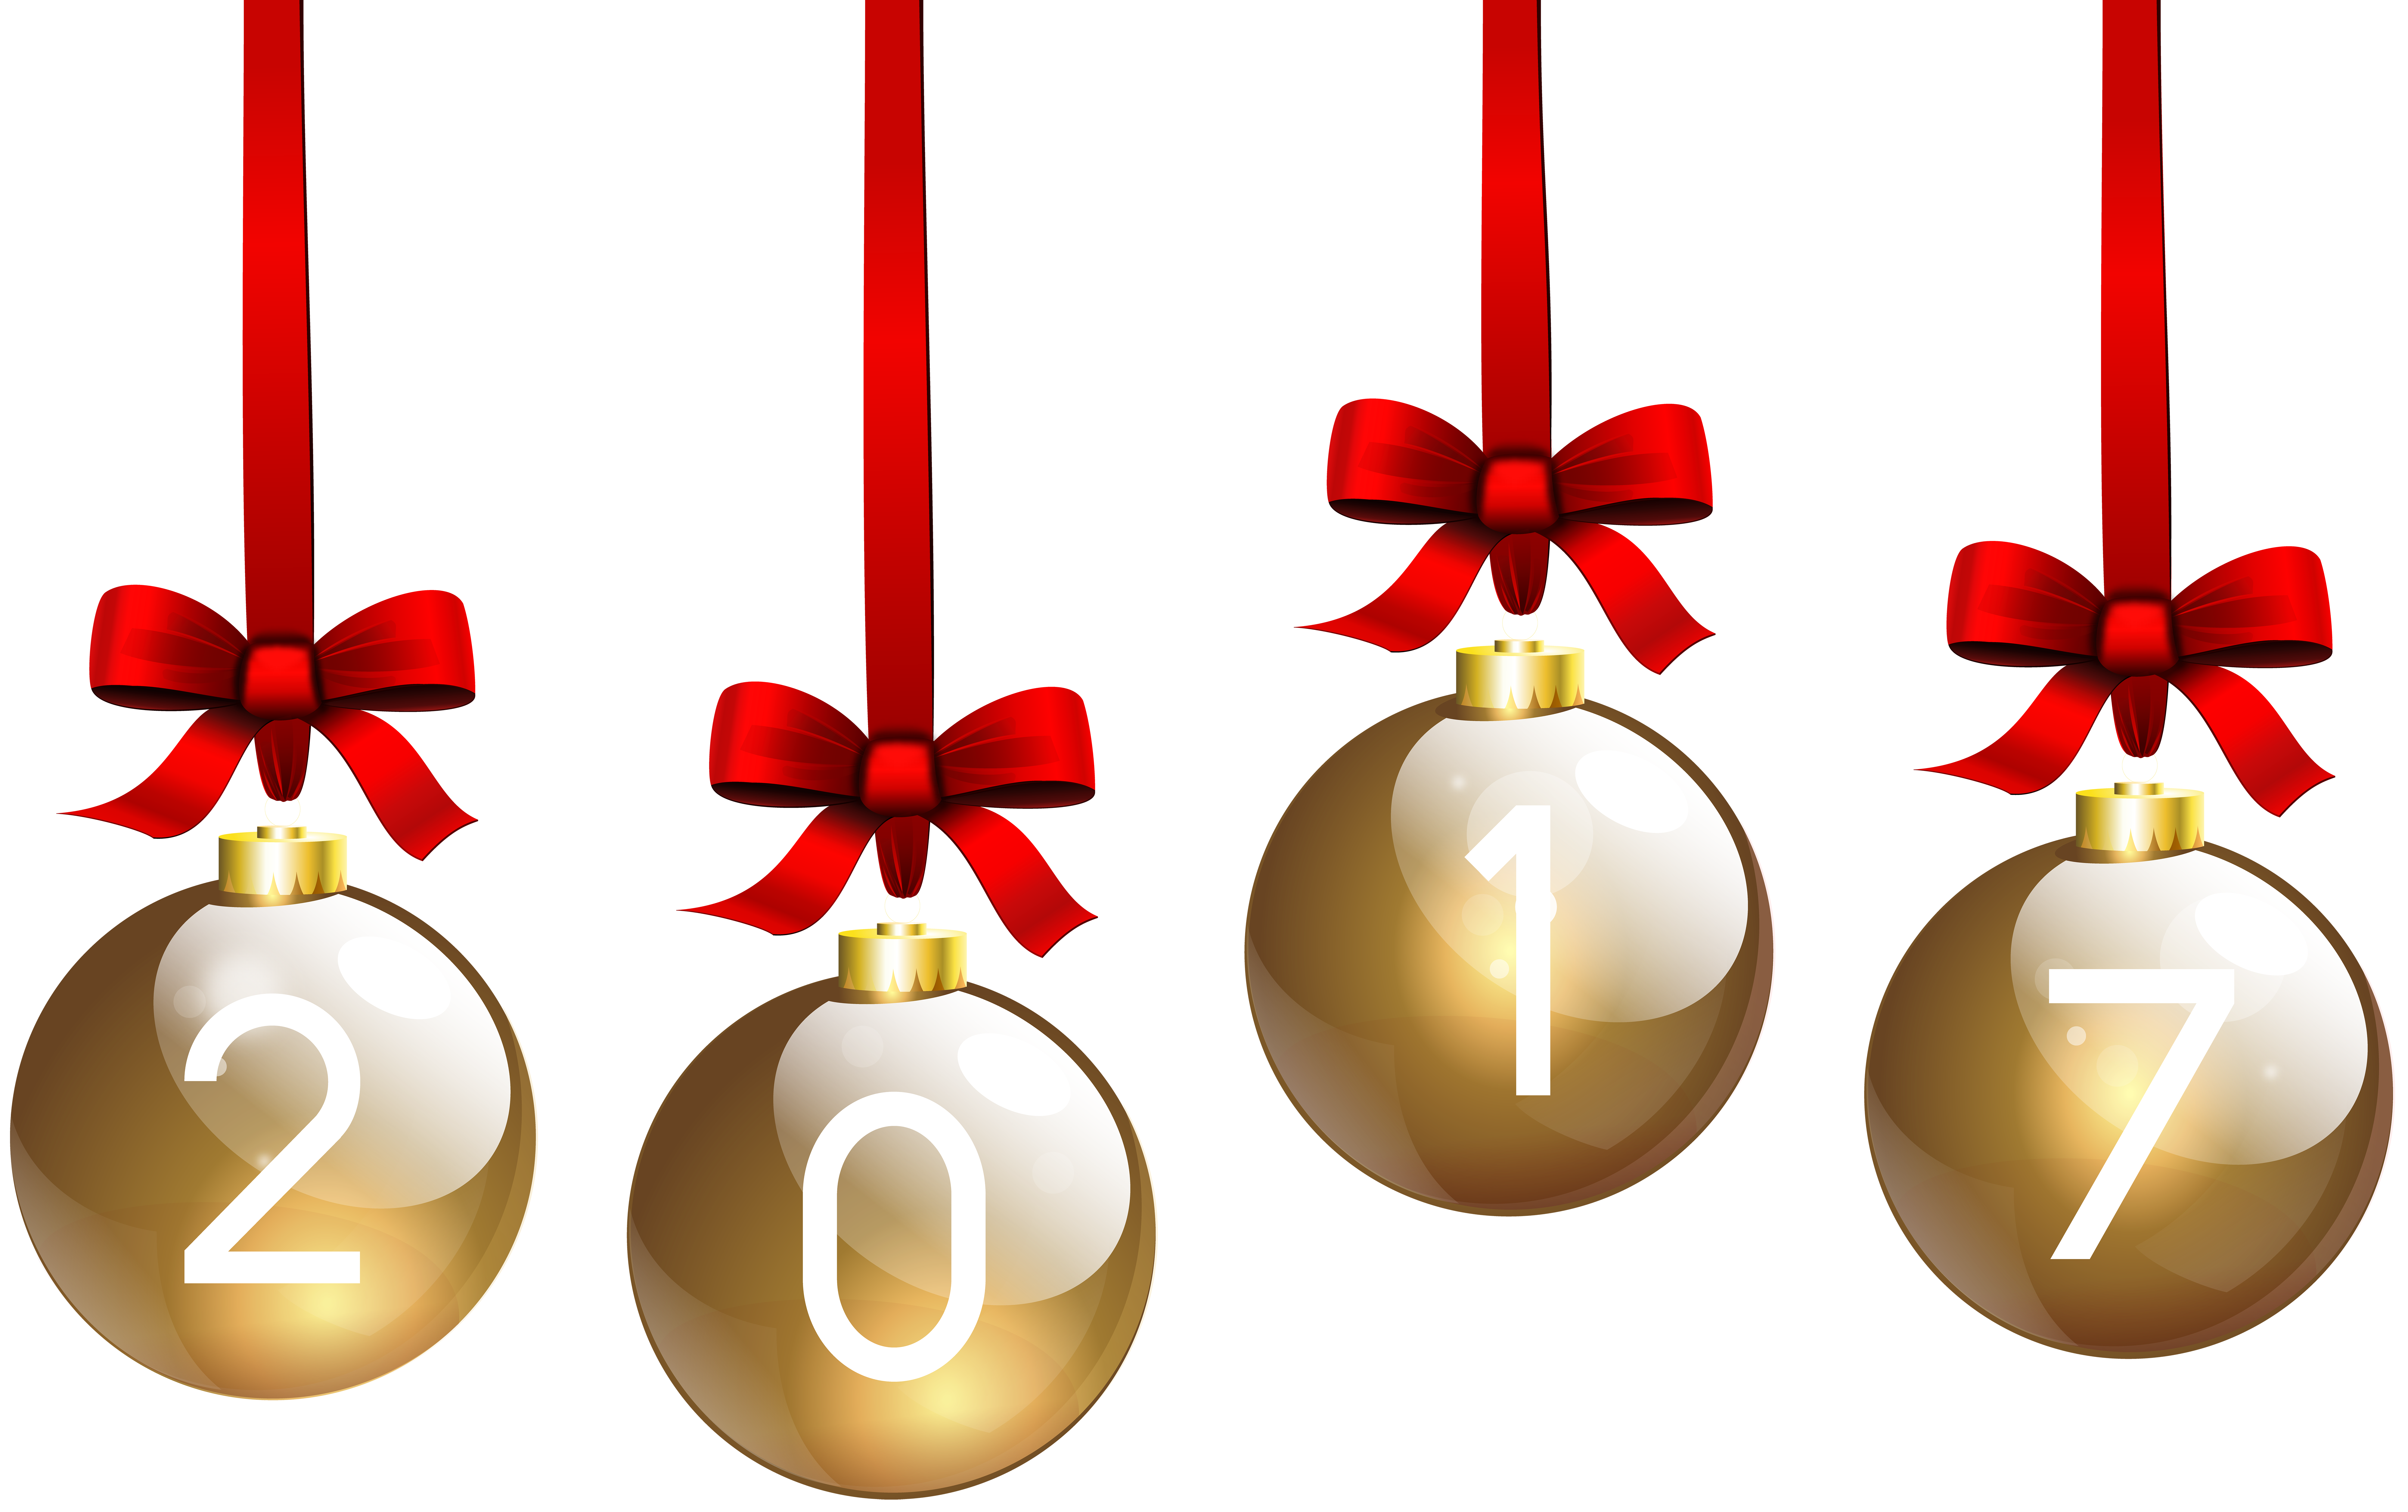 2017 clipart christmas banner free 2017 Christmas Balls Transparent PNG Clip Art   Gallery ... banner free